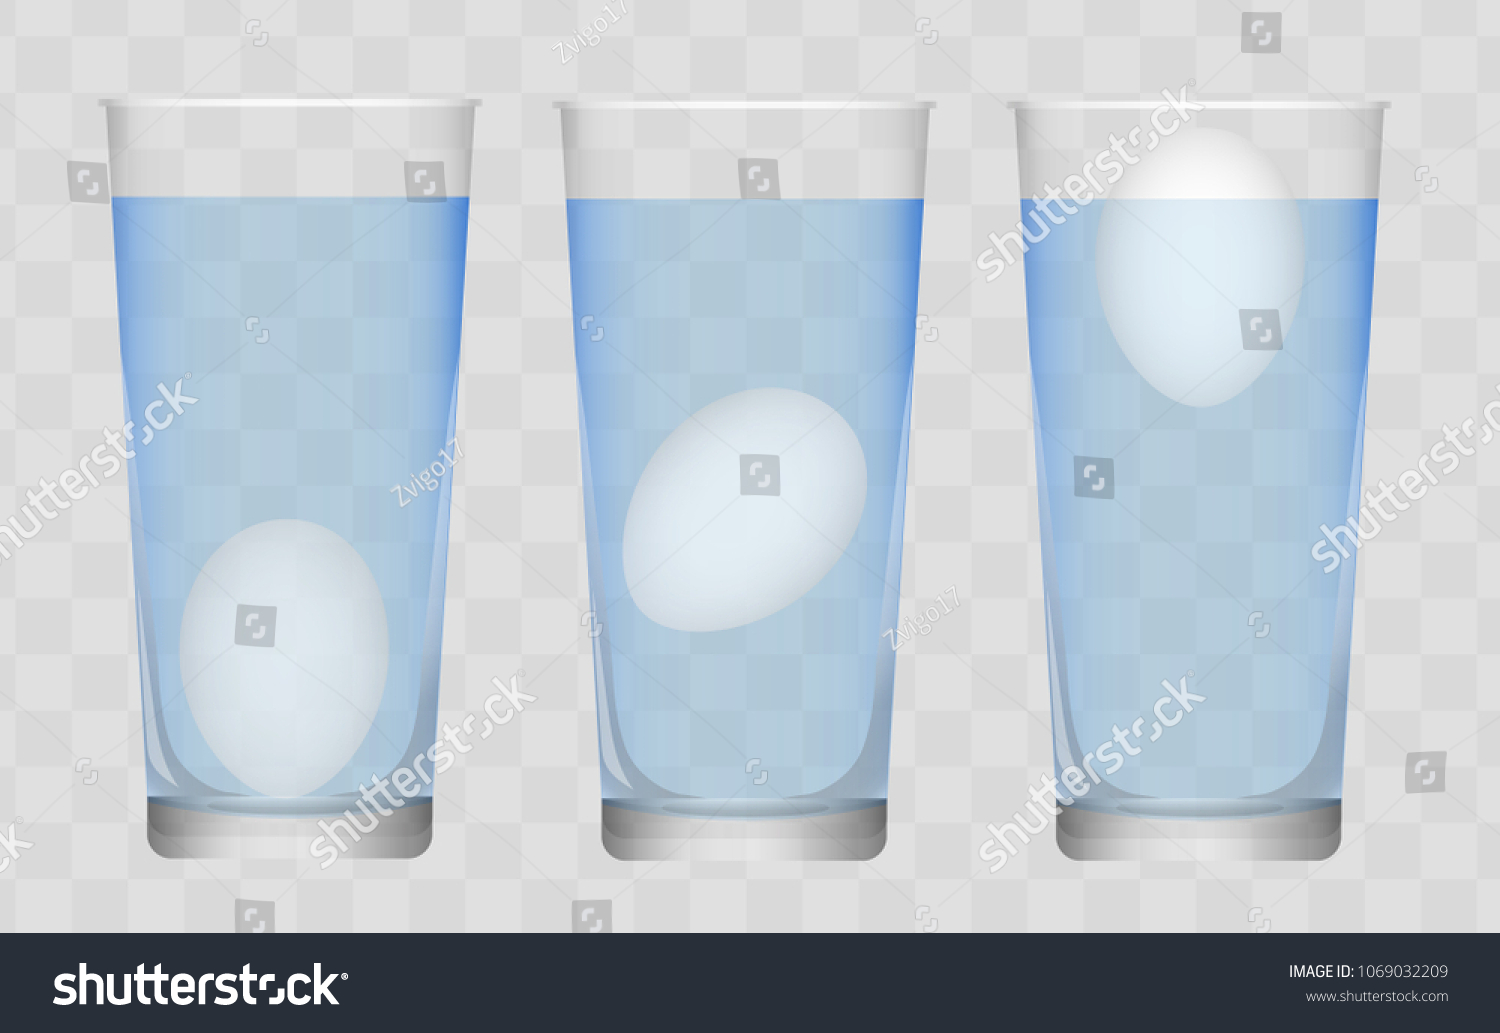 Egg Floating Test Glass Water Science Stock Illustration